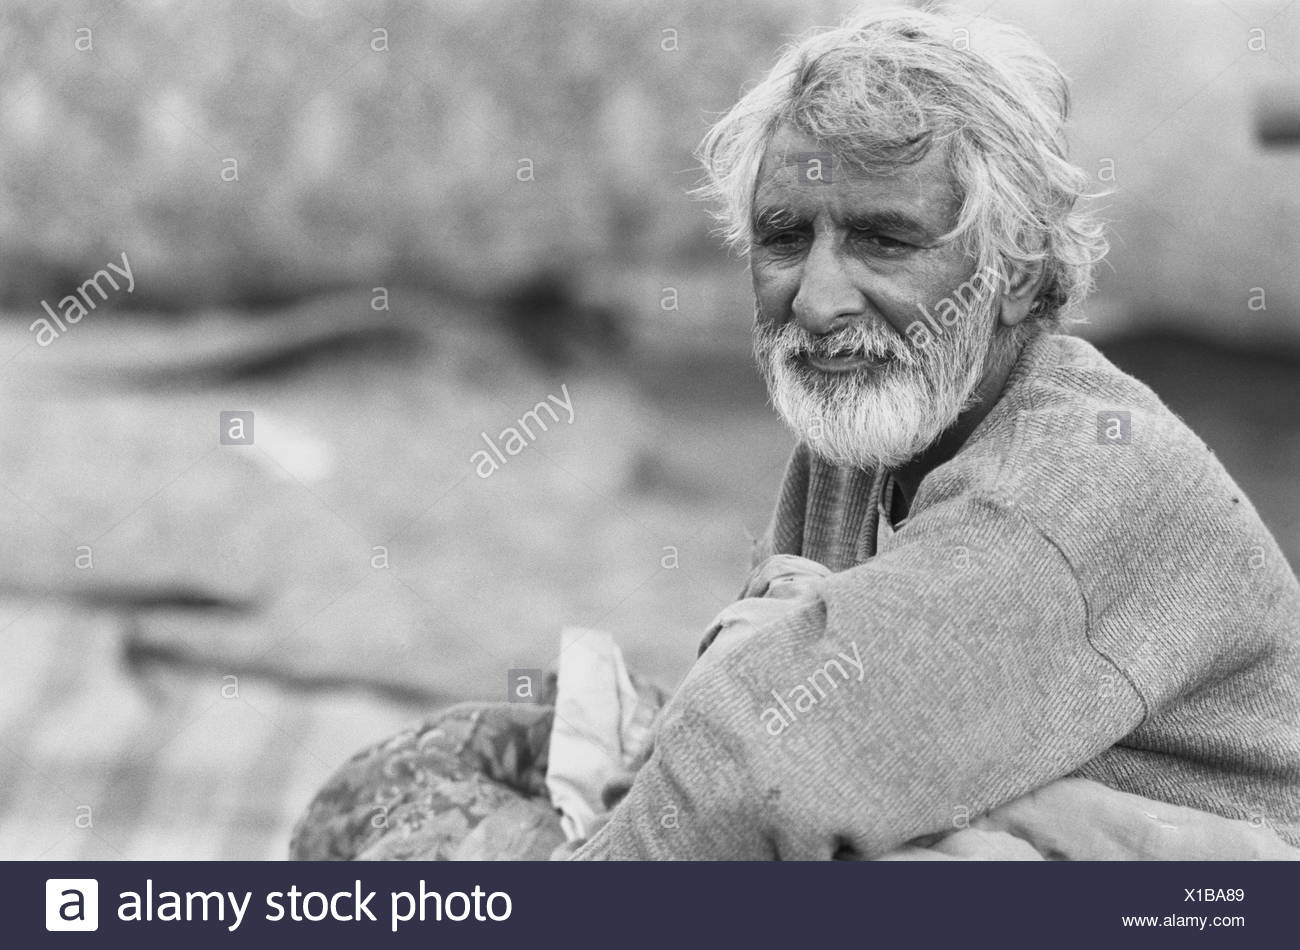 An old bearded man - Stock Image